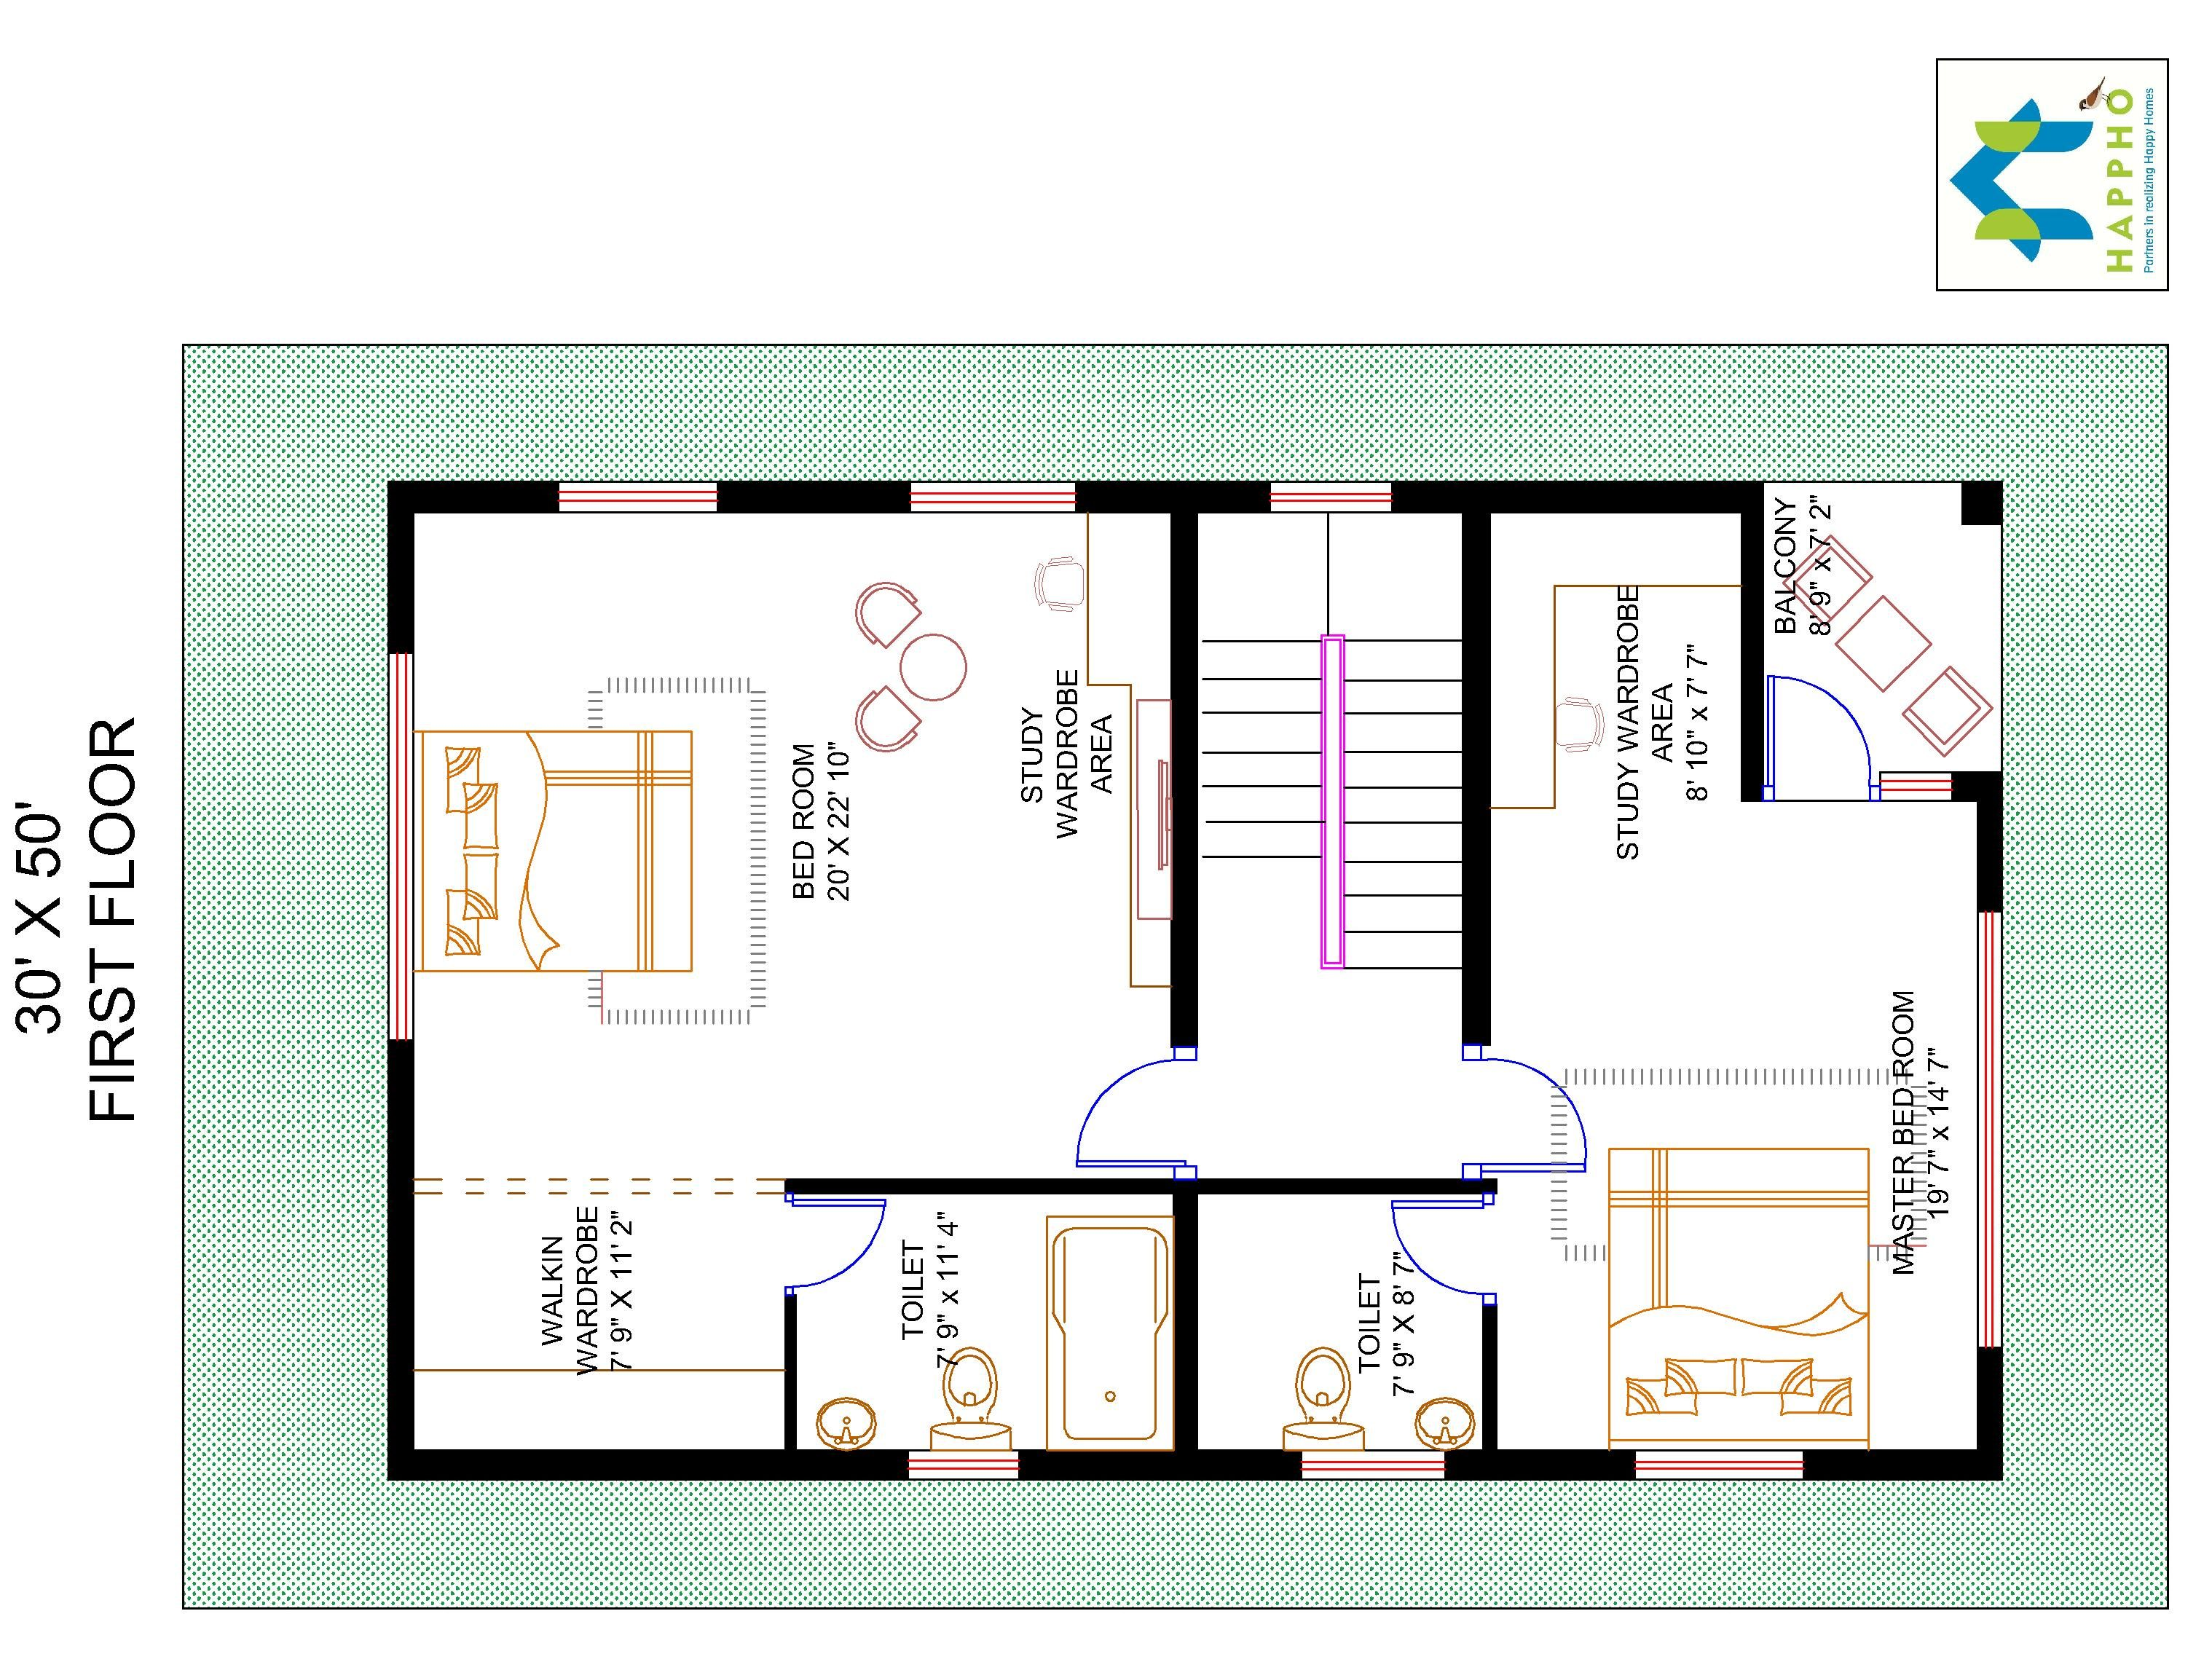 3 bhk floor plan for 30 x 50 plot 1500 square feet 166 for 1500 sq ft metal building